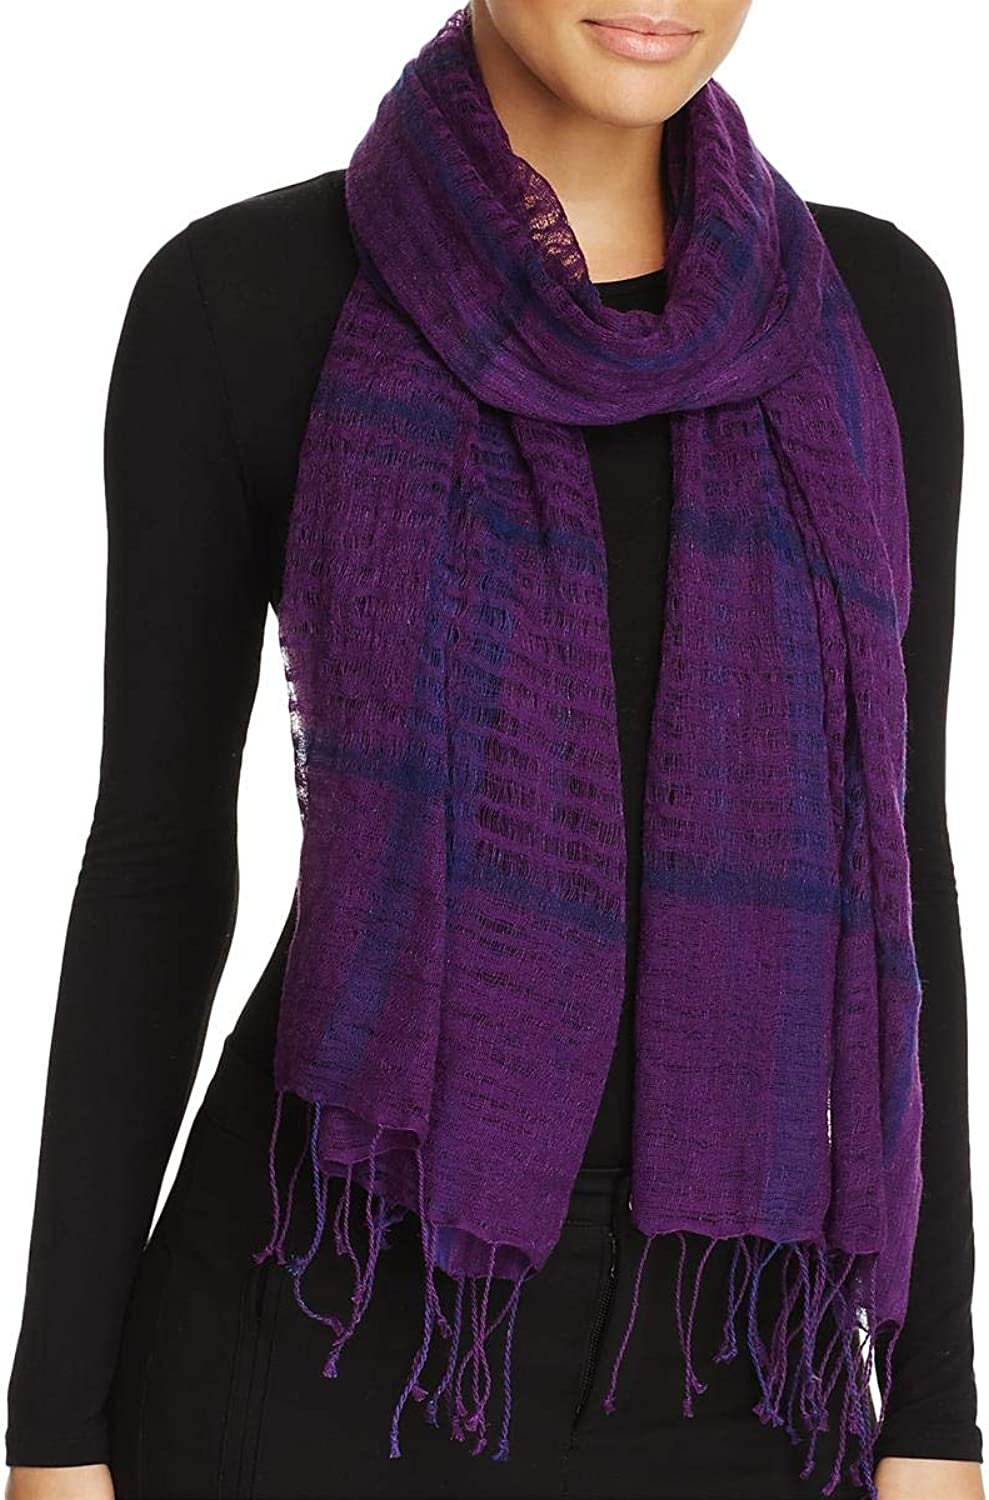 Eileen Fisher Womens Linen Blend Sheer Decorative Scarf Purple O S